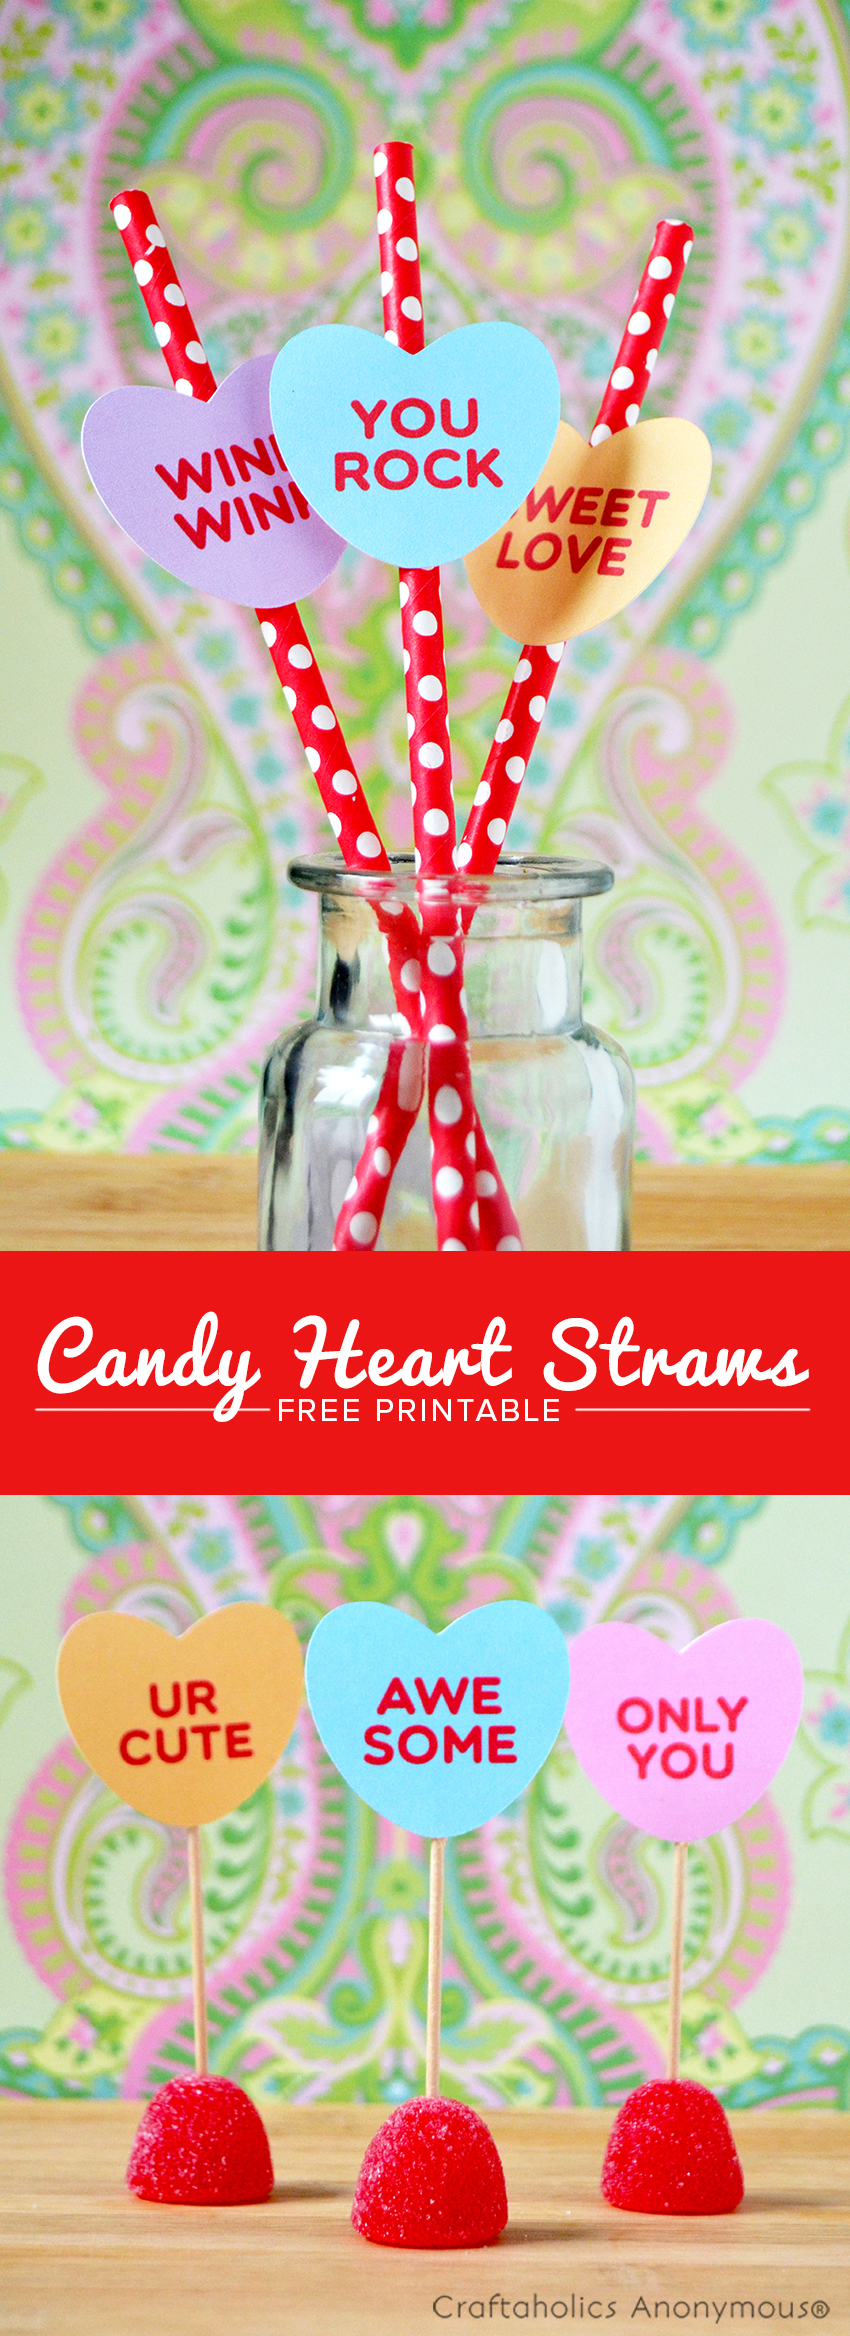 candy-heart-straw-printable-5